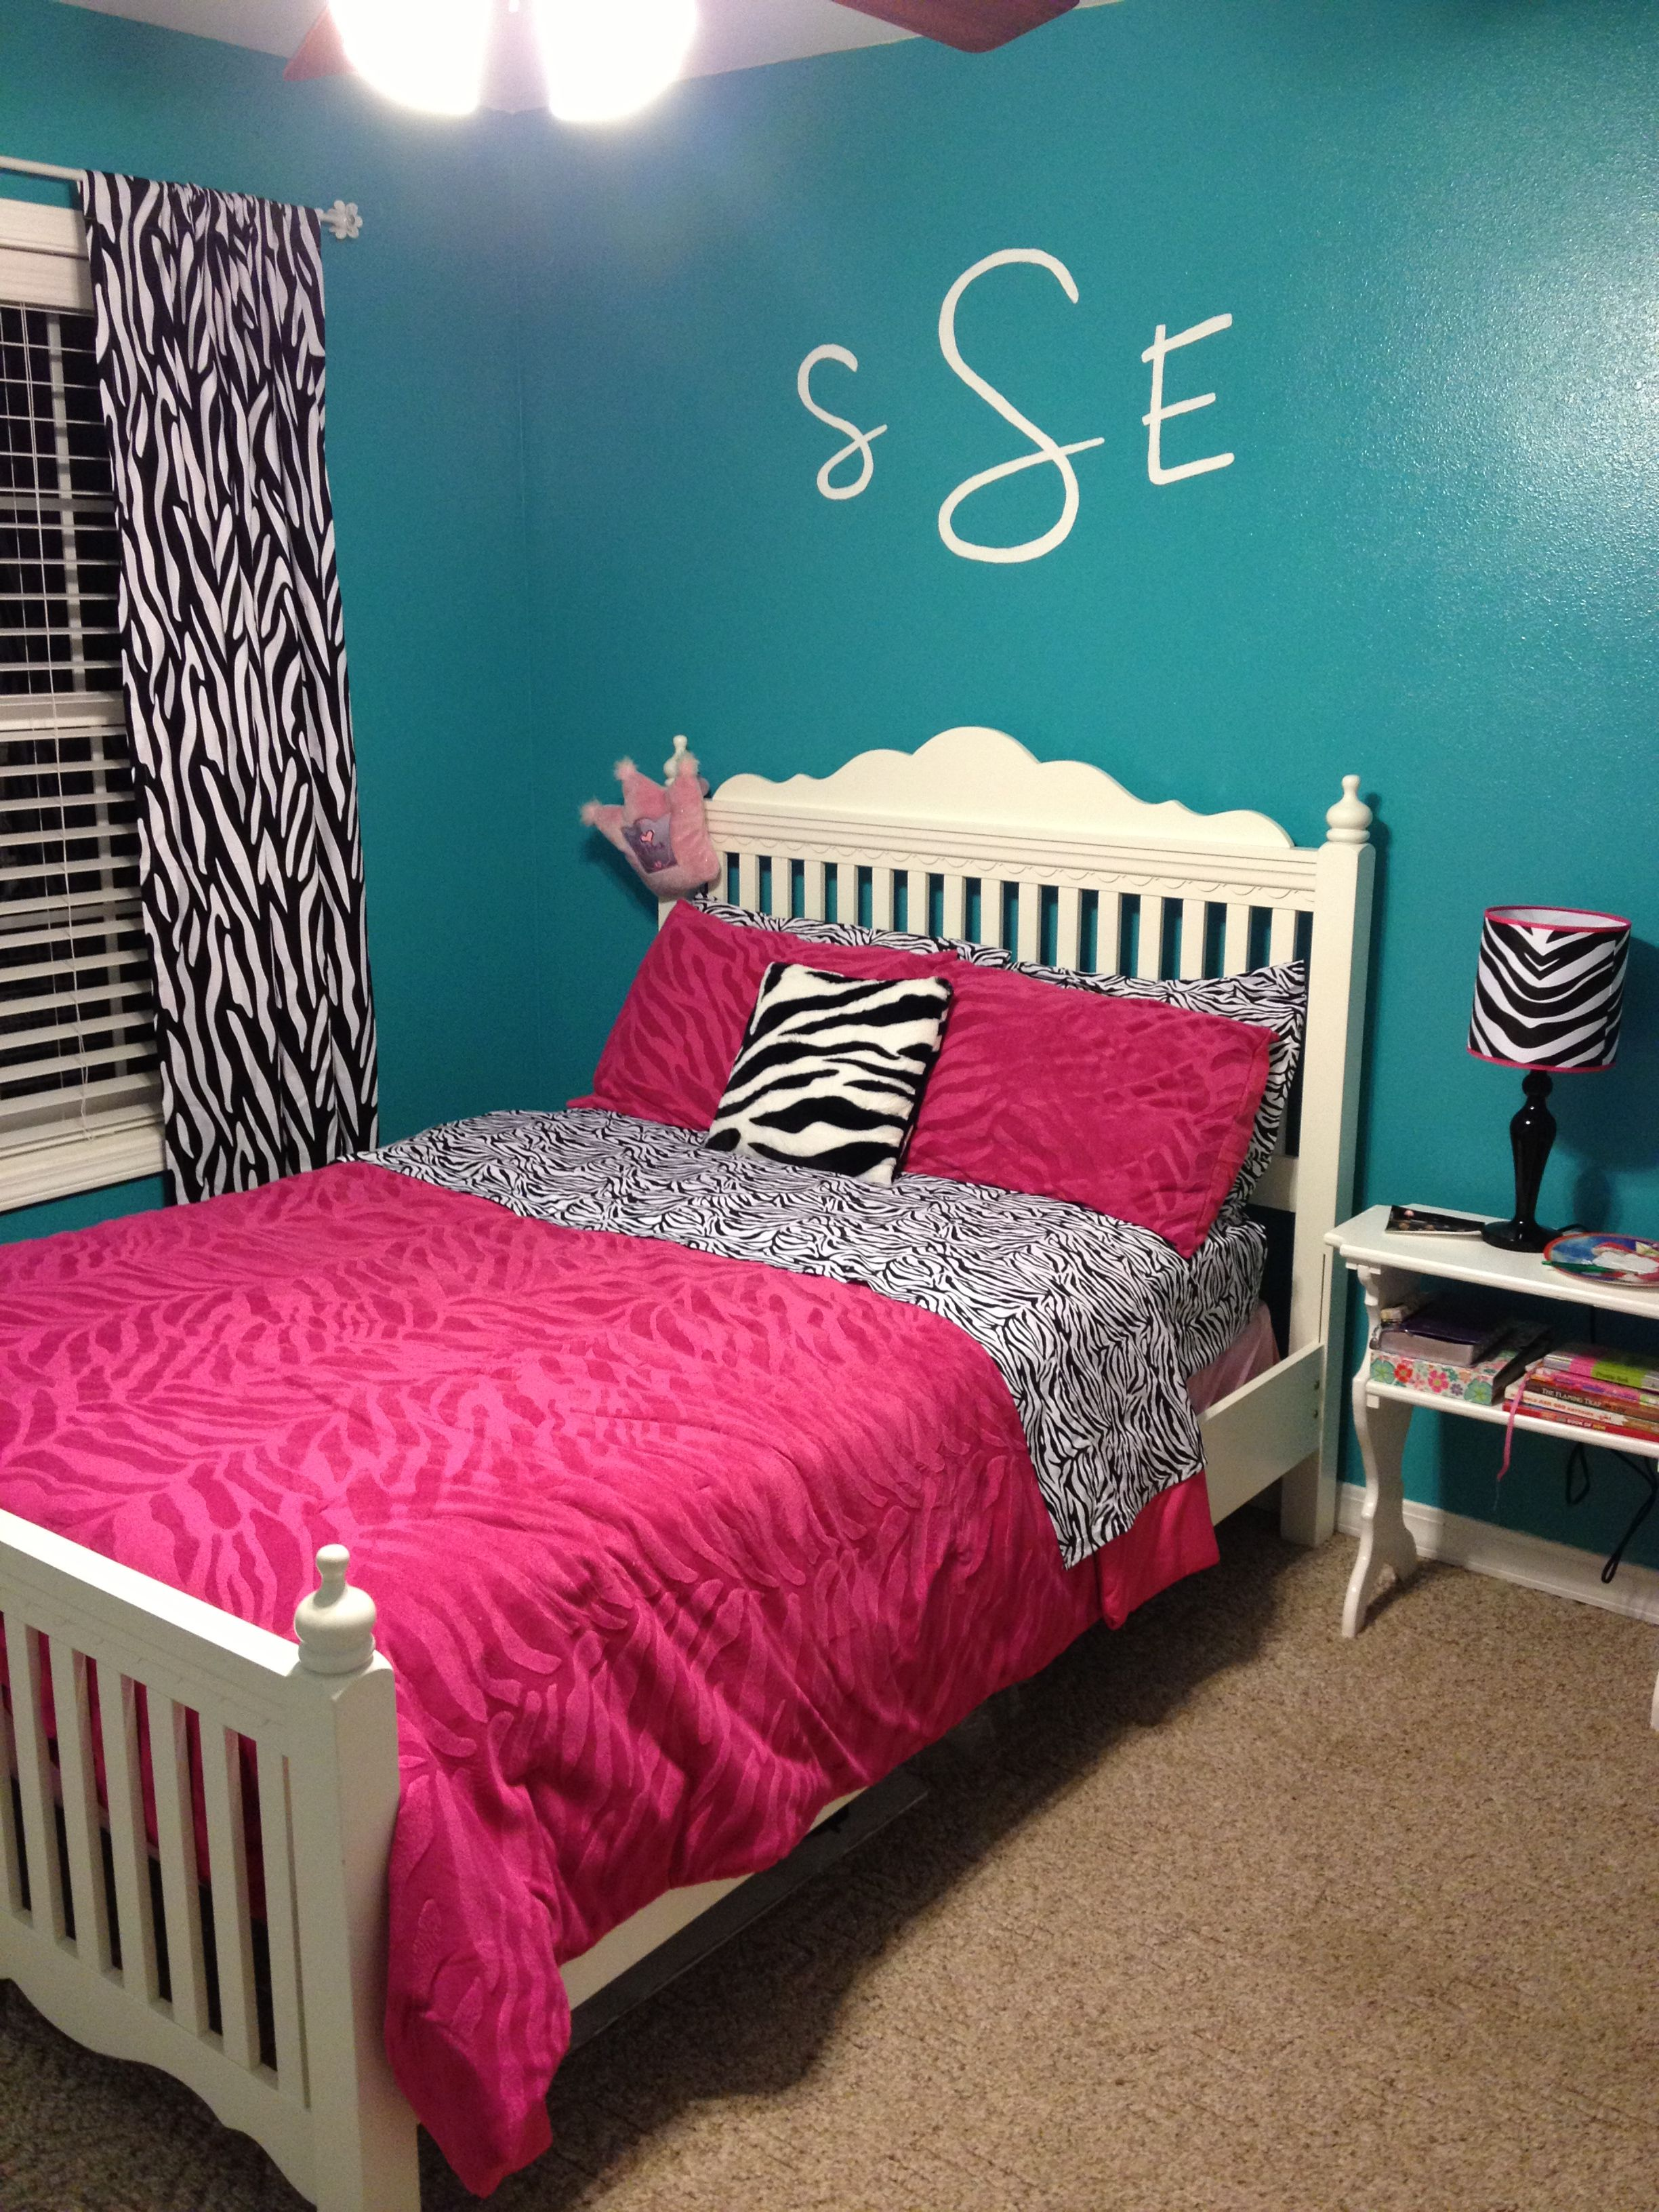 savannah bedroom makeover pink zebra striped and teal 19471 | c51f3322a2e1ebb35ef882c3aafa57a8